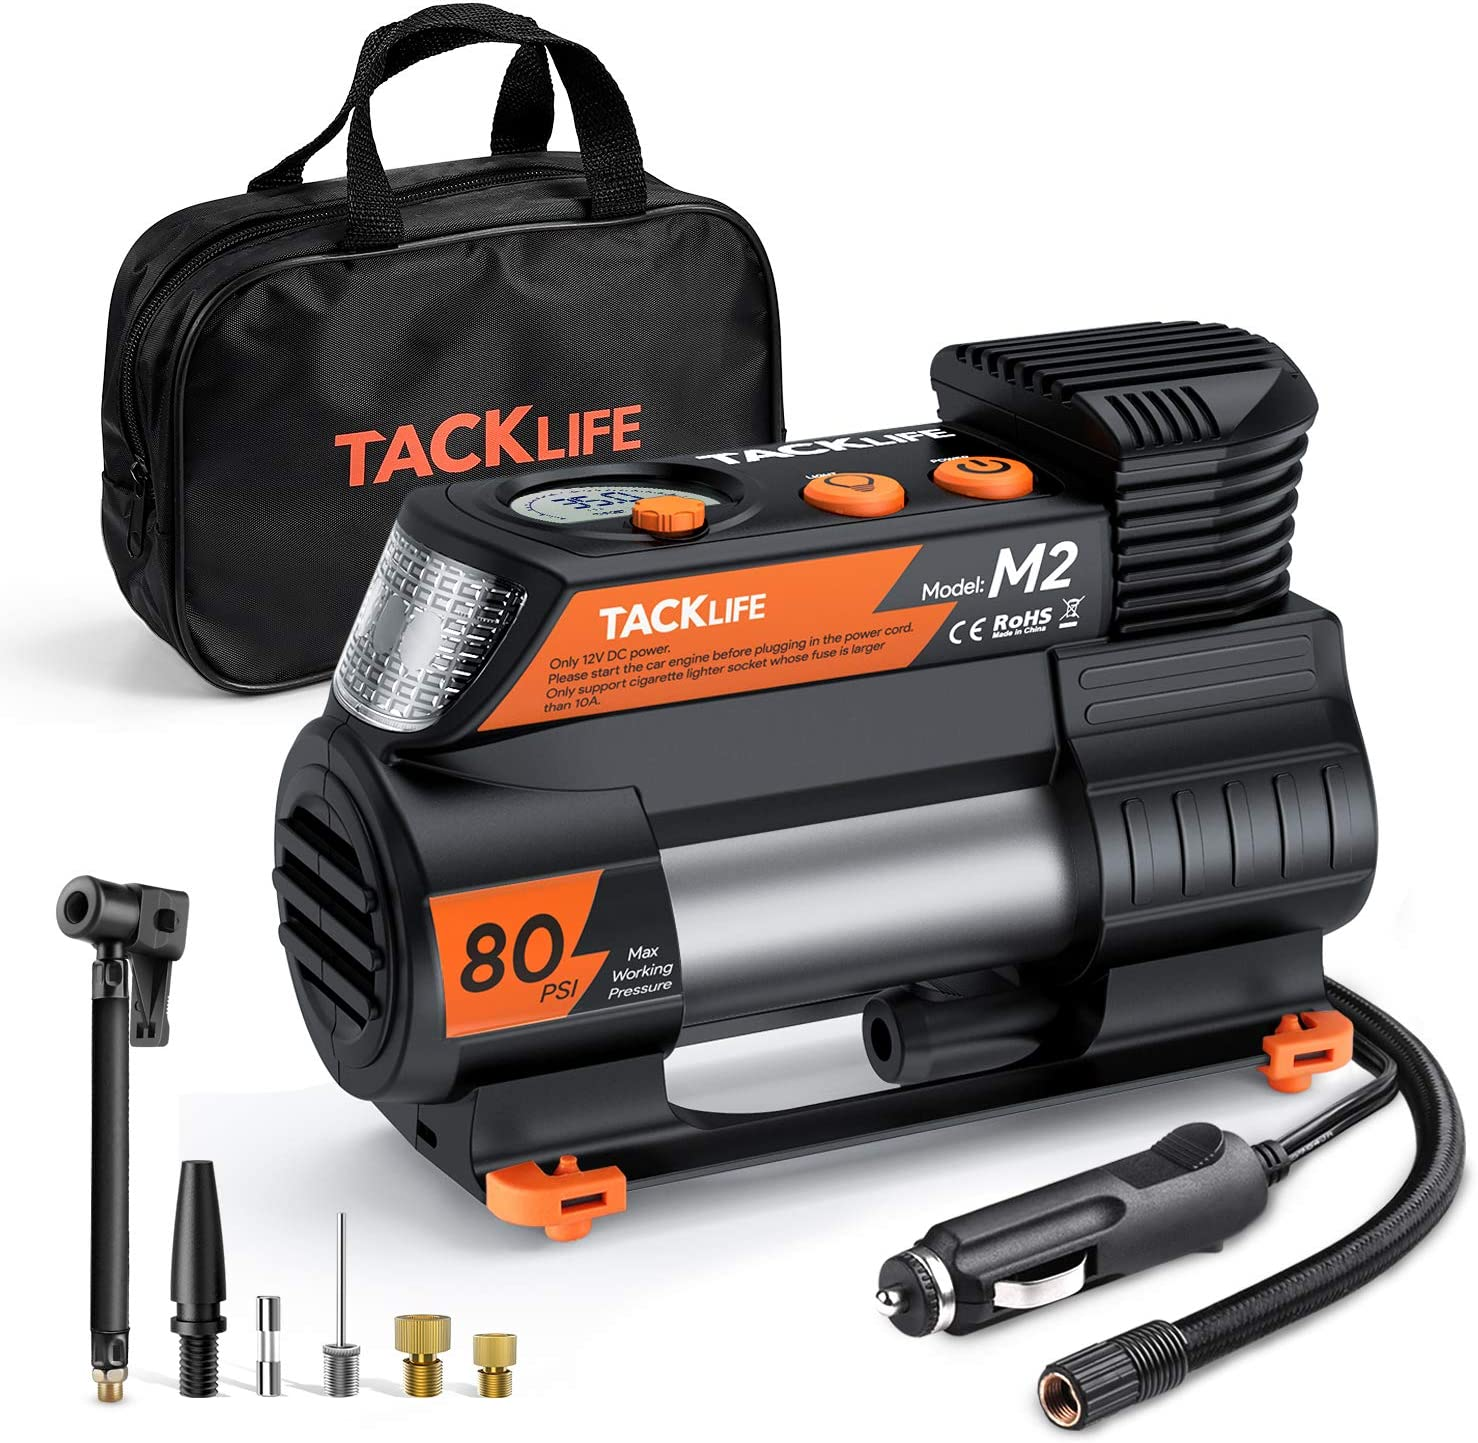 TACKLIFE M2 12V DC Digital Auto Tire Inflator Portable Air Compressor Pump with Digital Pressure Gauge for Cars Bikes and Other Inflatables (TACKLIFE Newest Upgraded Tire Inflator)